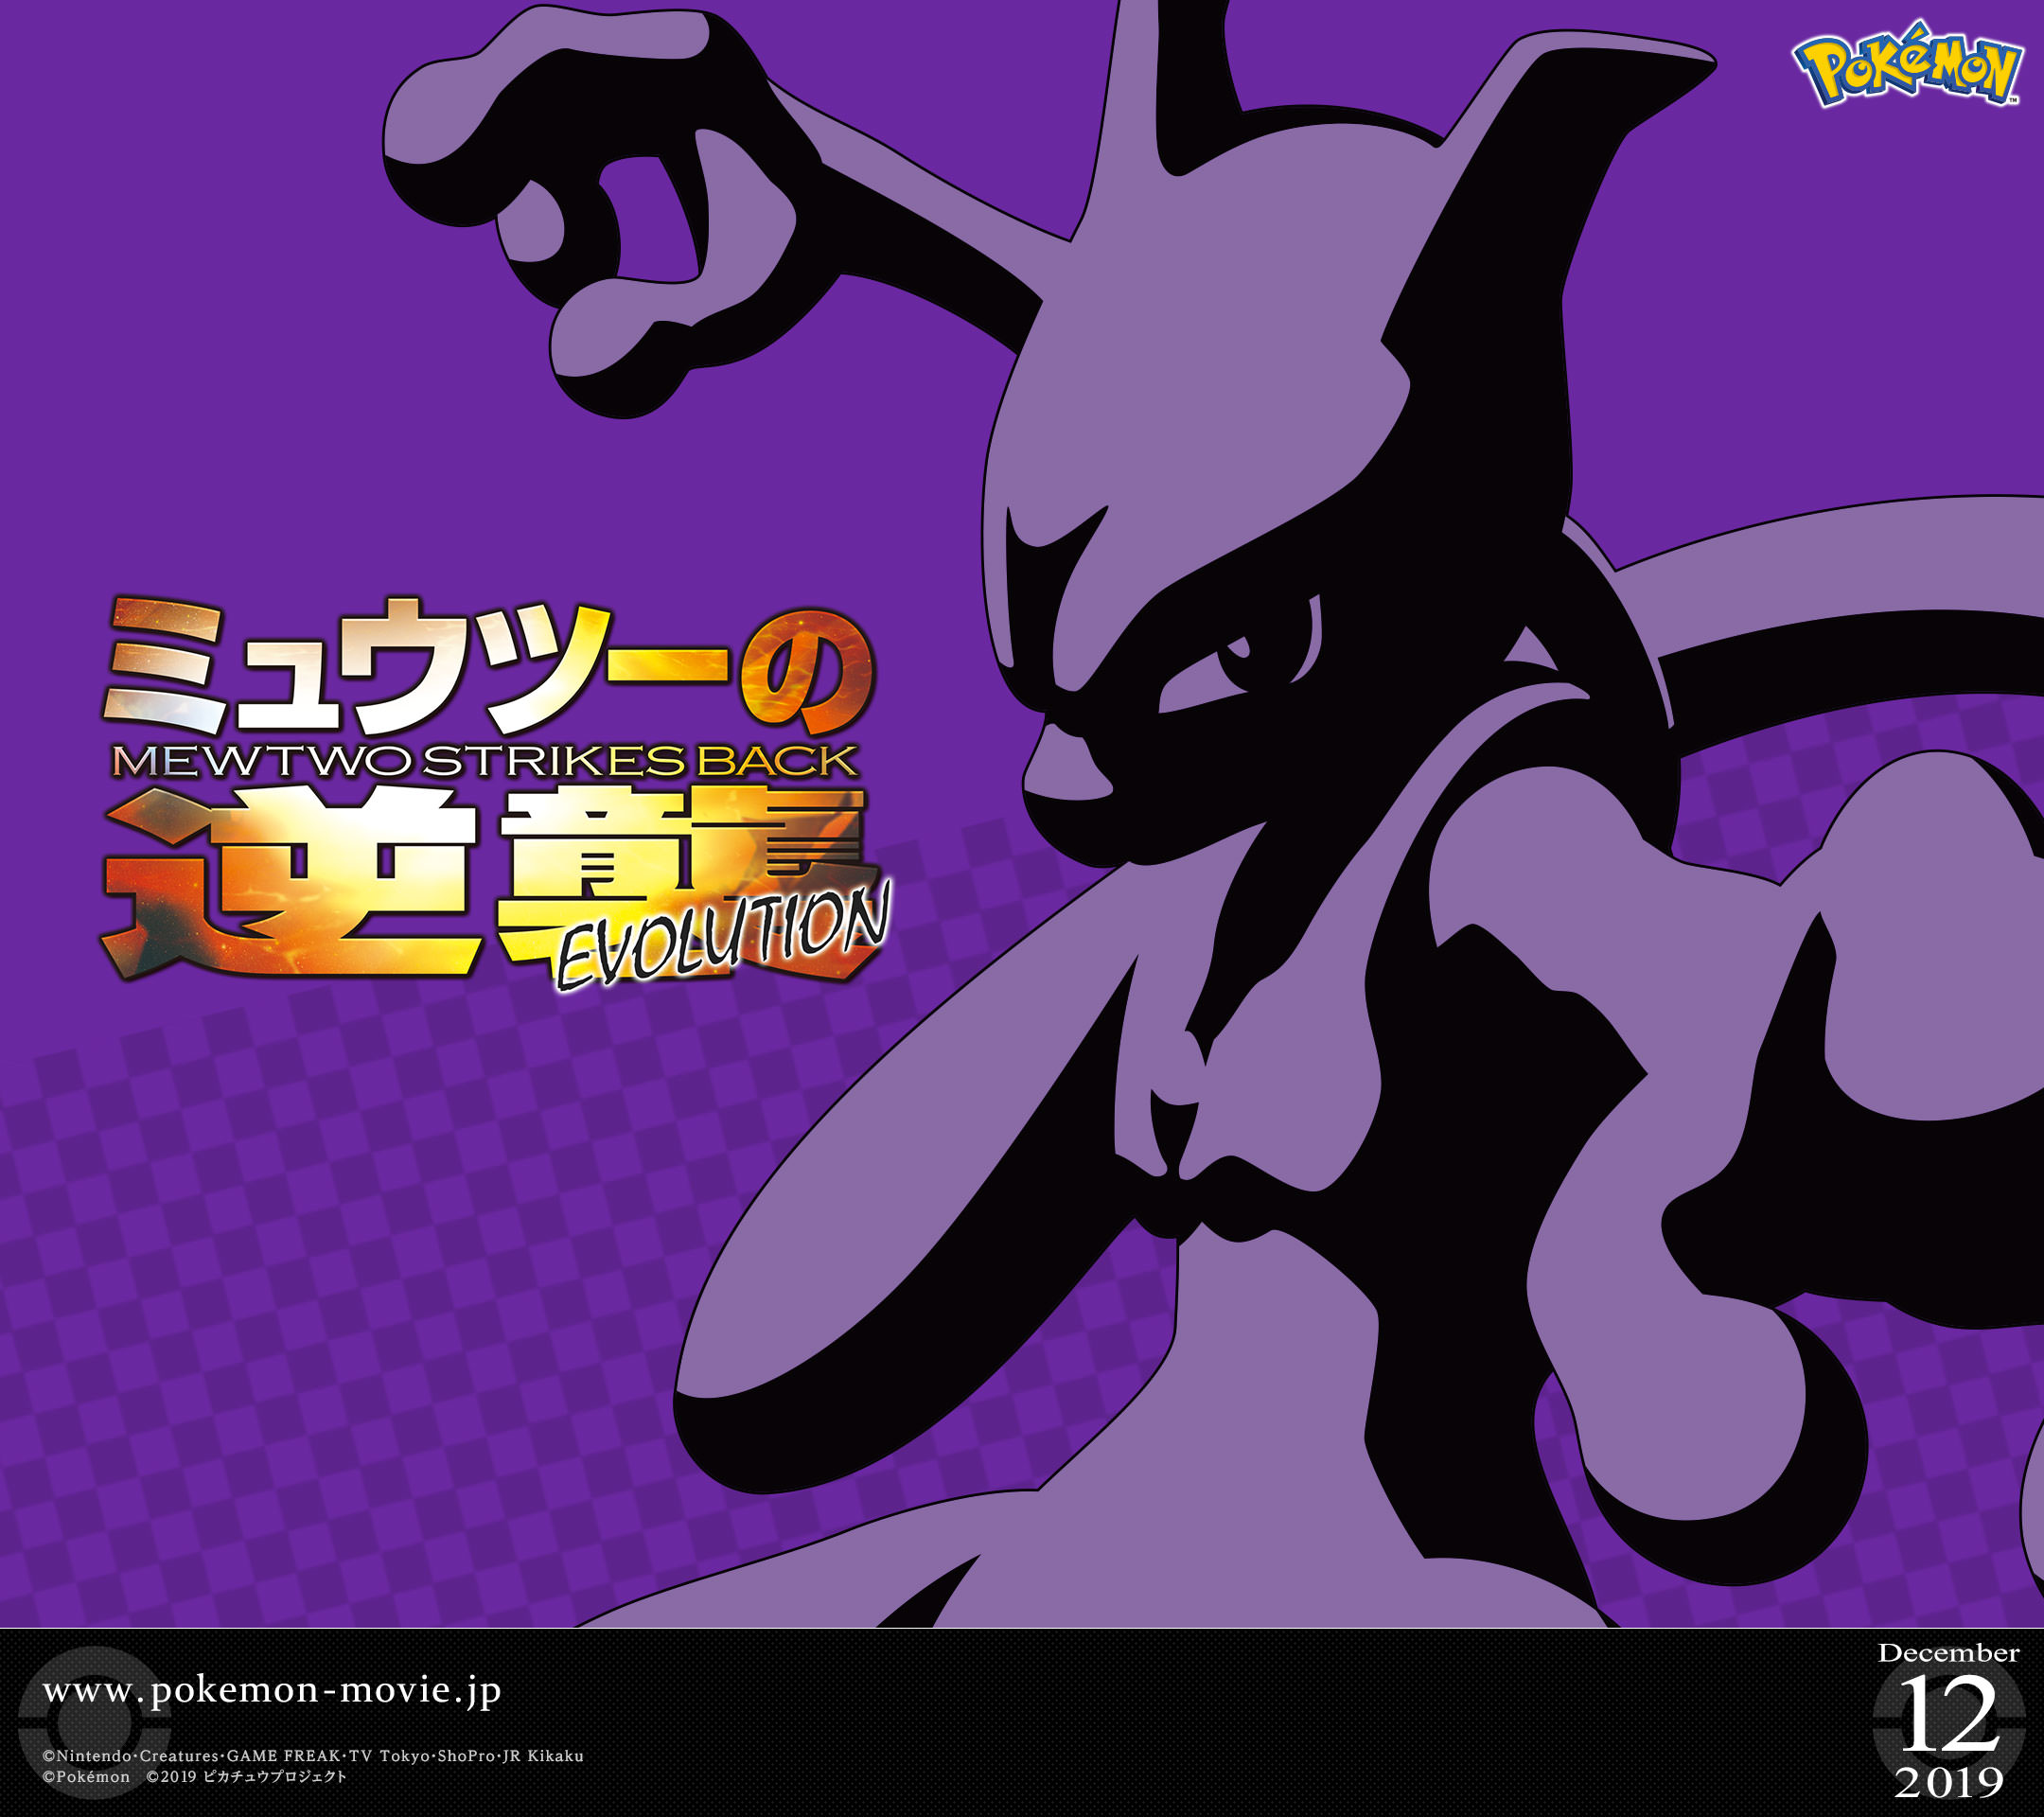 Download This Cool Mewtwo Strikes Back Evolution Wallpaper